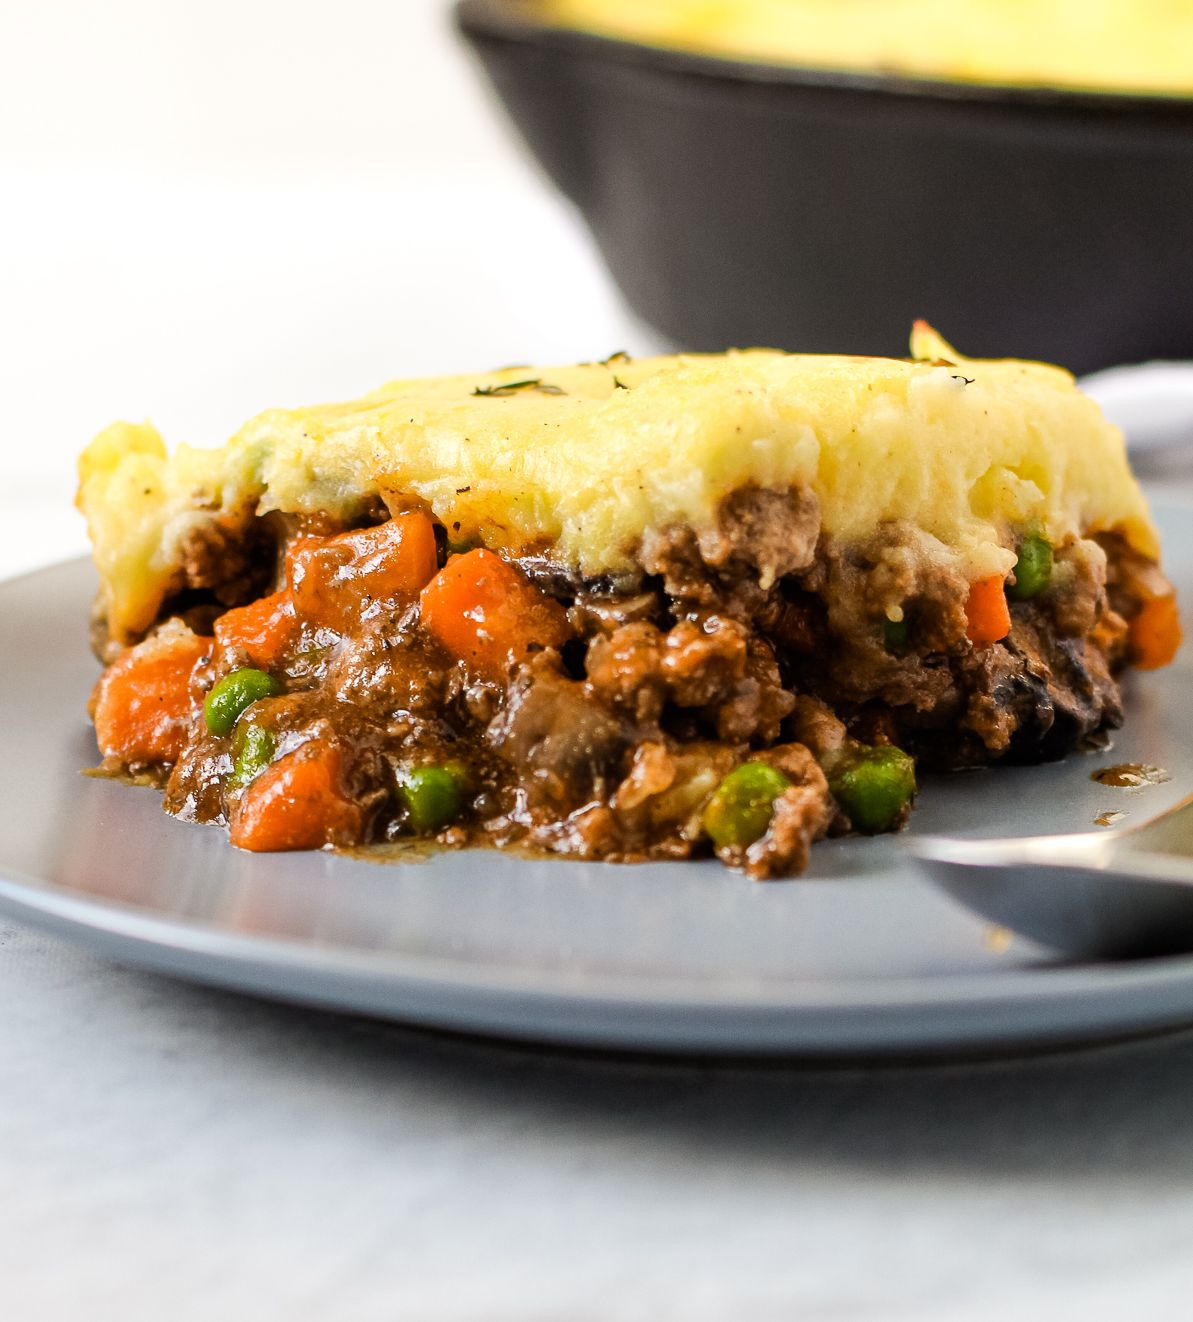 Beef Shepherd S Pie With Carrots And Peas By Everydaypie Quick Easy Recipe The Feedfeed